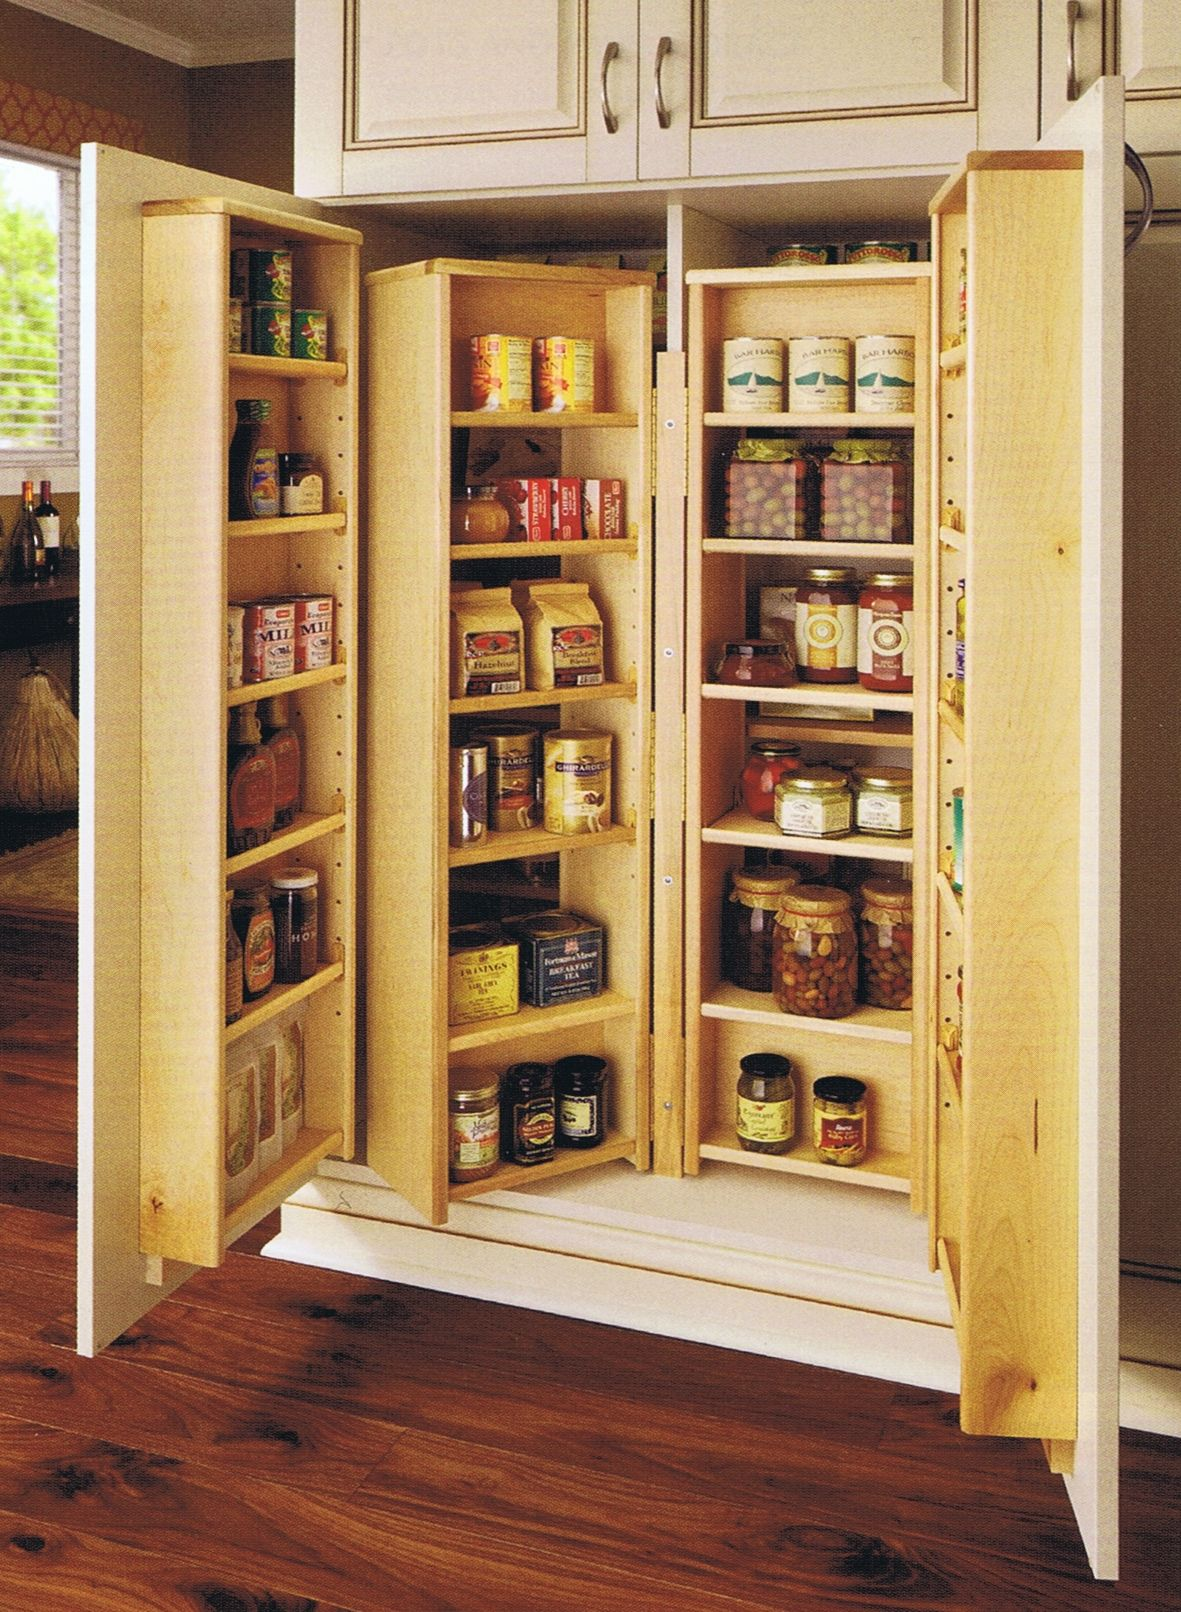 Pantry Cabinets: Neat Triple Shelf Space